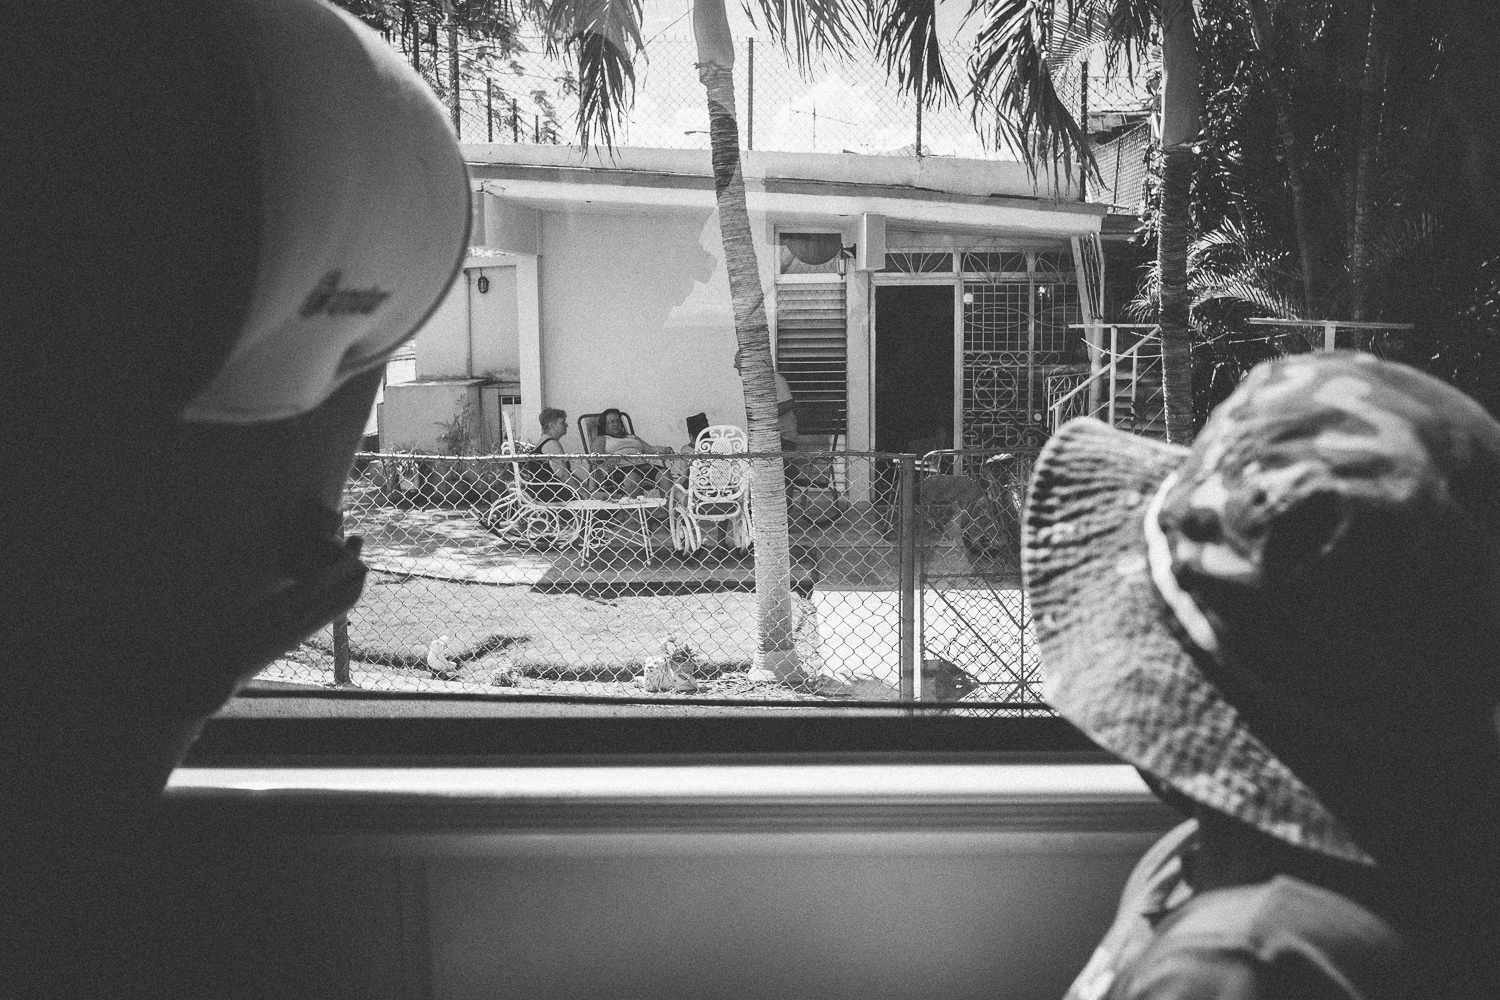 People watching from the tour bus in Varadero, Cuba 2015.